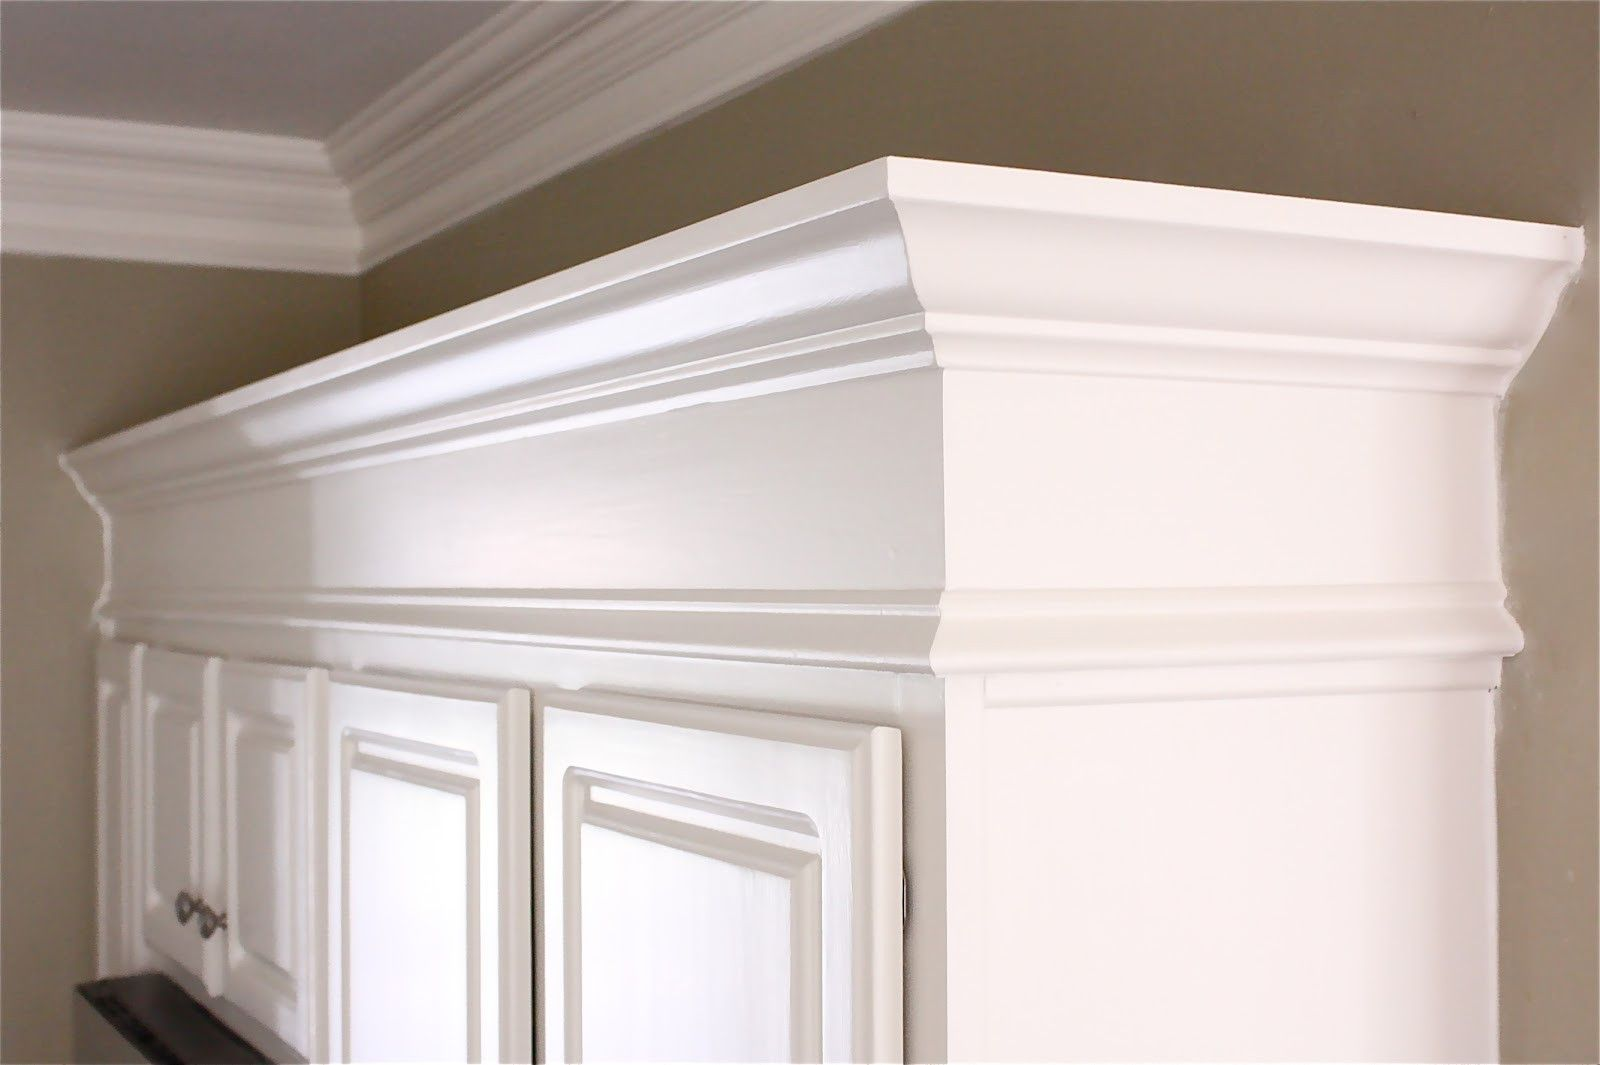 77 Decorative Cabinet Trim Molding Kitchen Cabinets Storage Ideas Check More At Http Www Planetgreenspot Com 2018 D Builders Cabinets Home Cabinet Molding